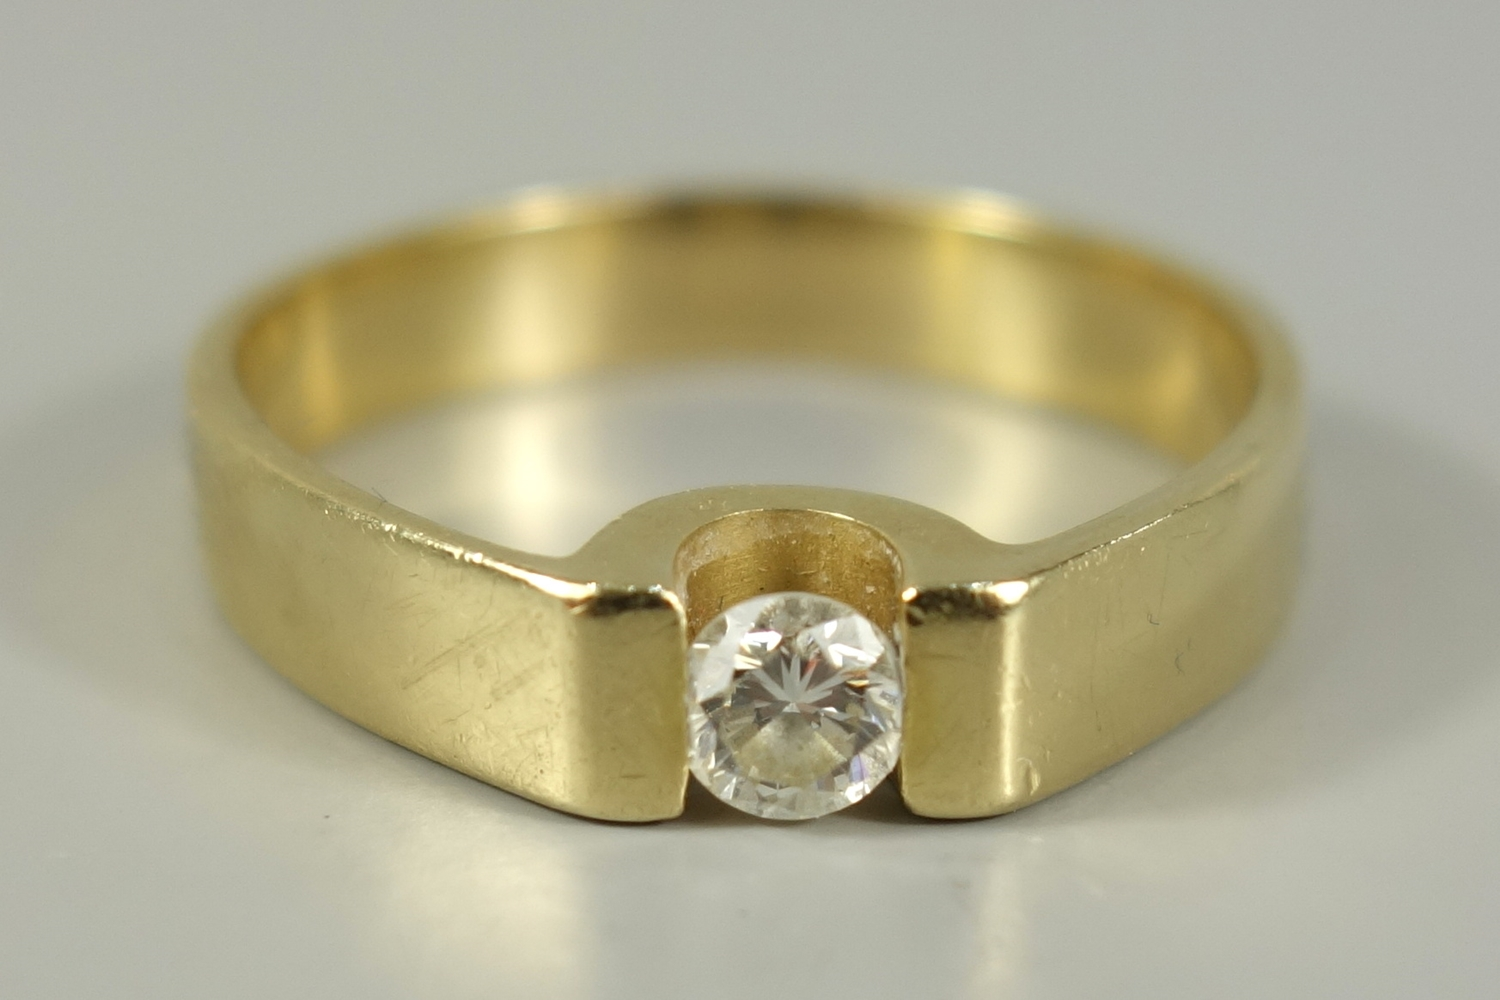 Ring mit Diamant-Brillant, 750er Gelbgold, Gew.5,89g, Dia.-Brill. ca.0,20ct, H, VVS, U.59Ring with